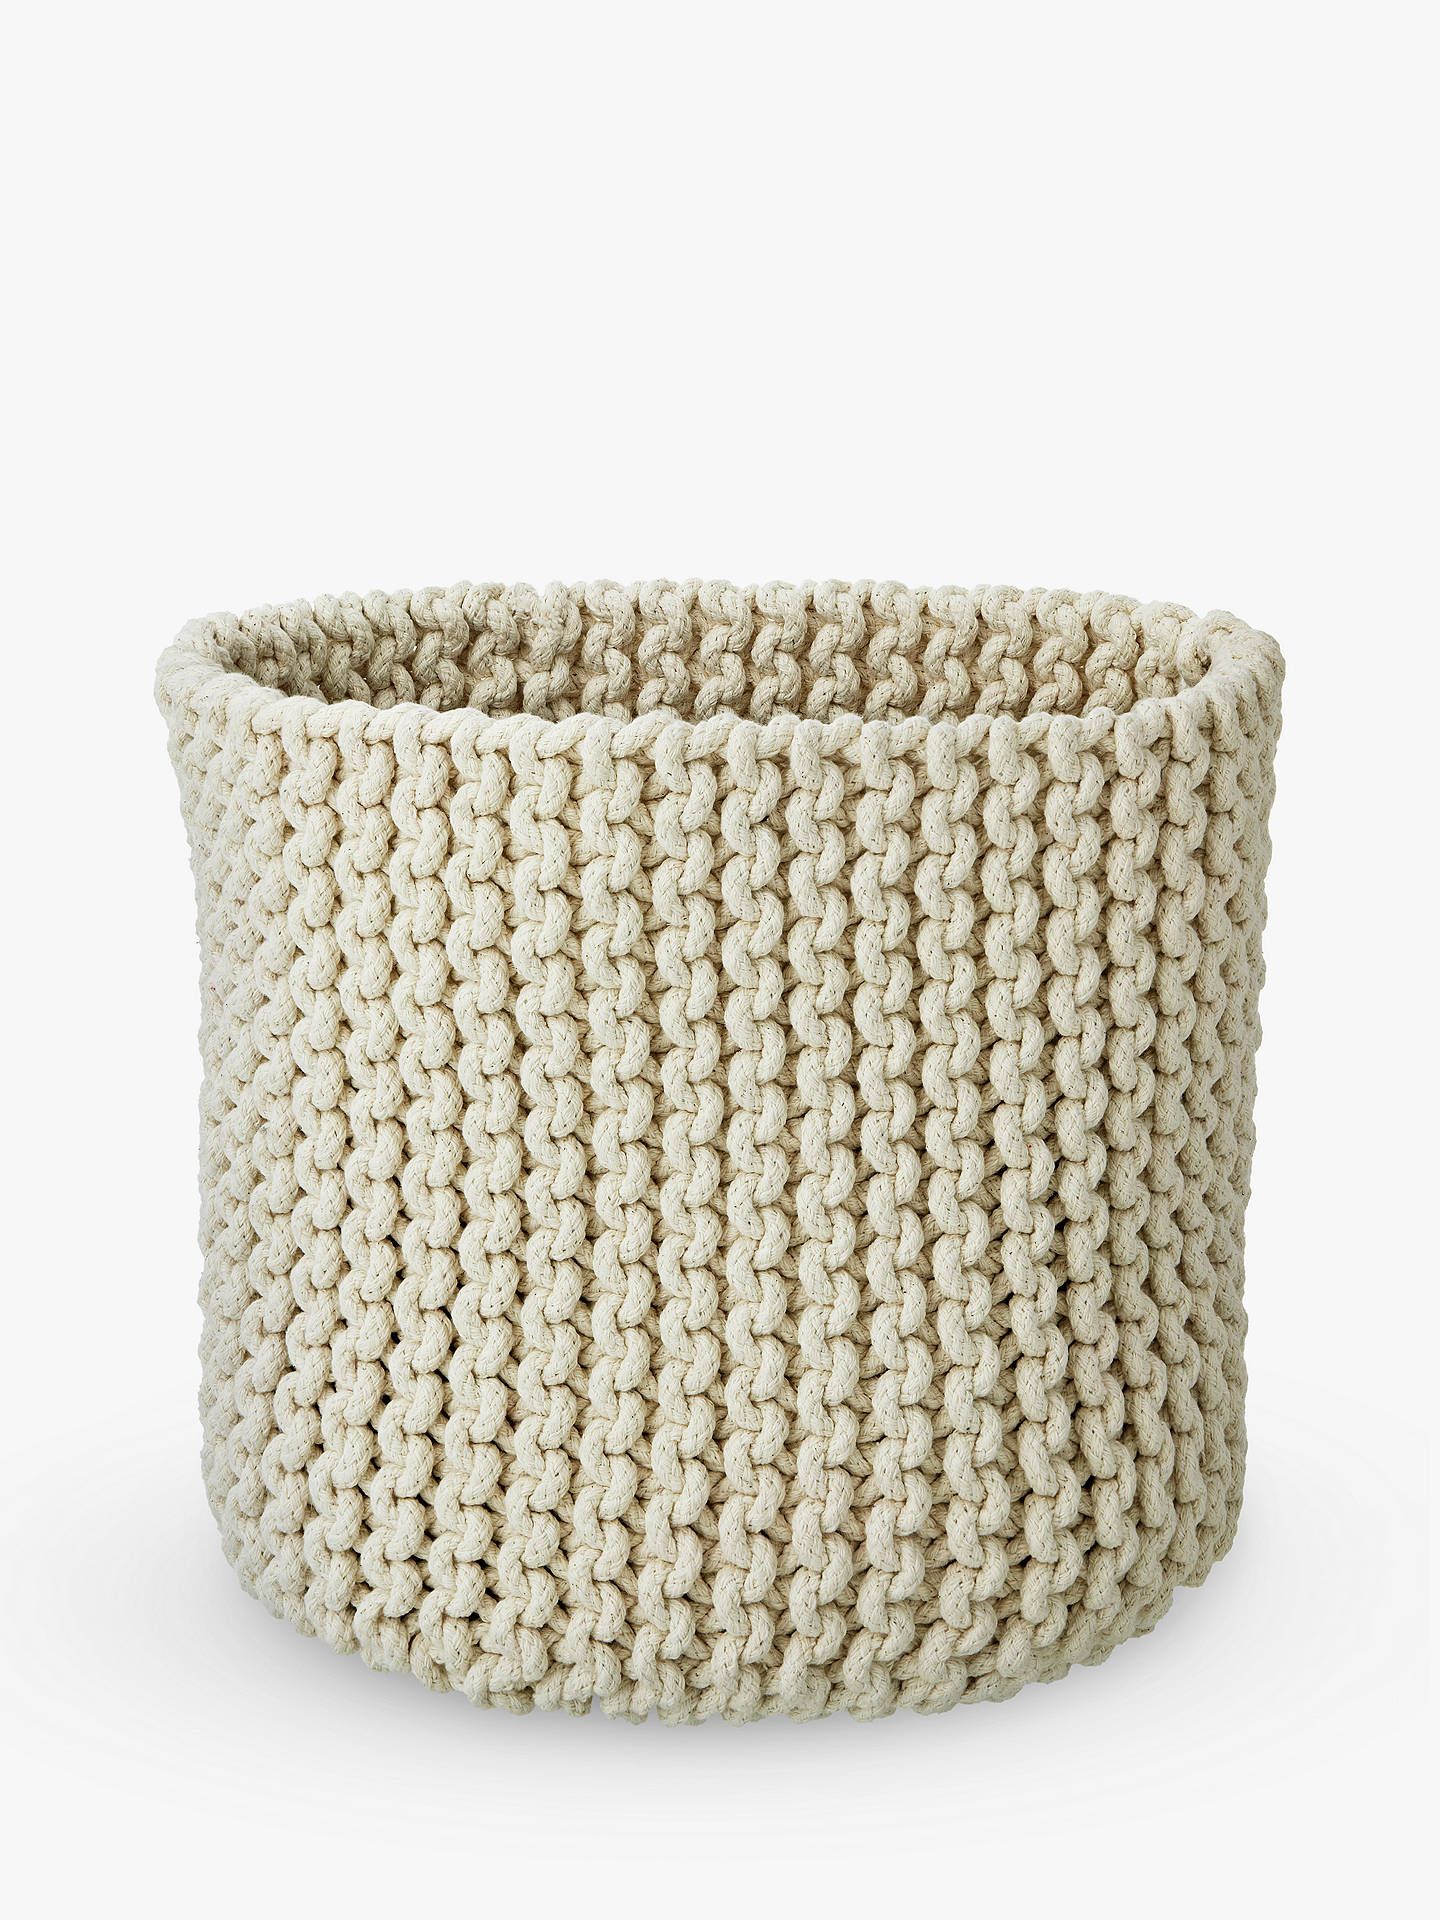 Croft Collection Knitted Basket At John Lewis Partners